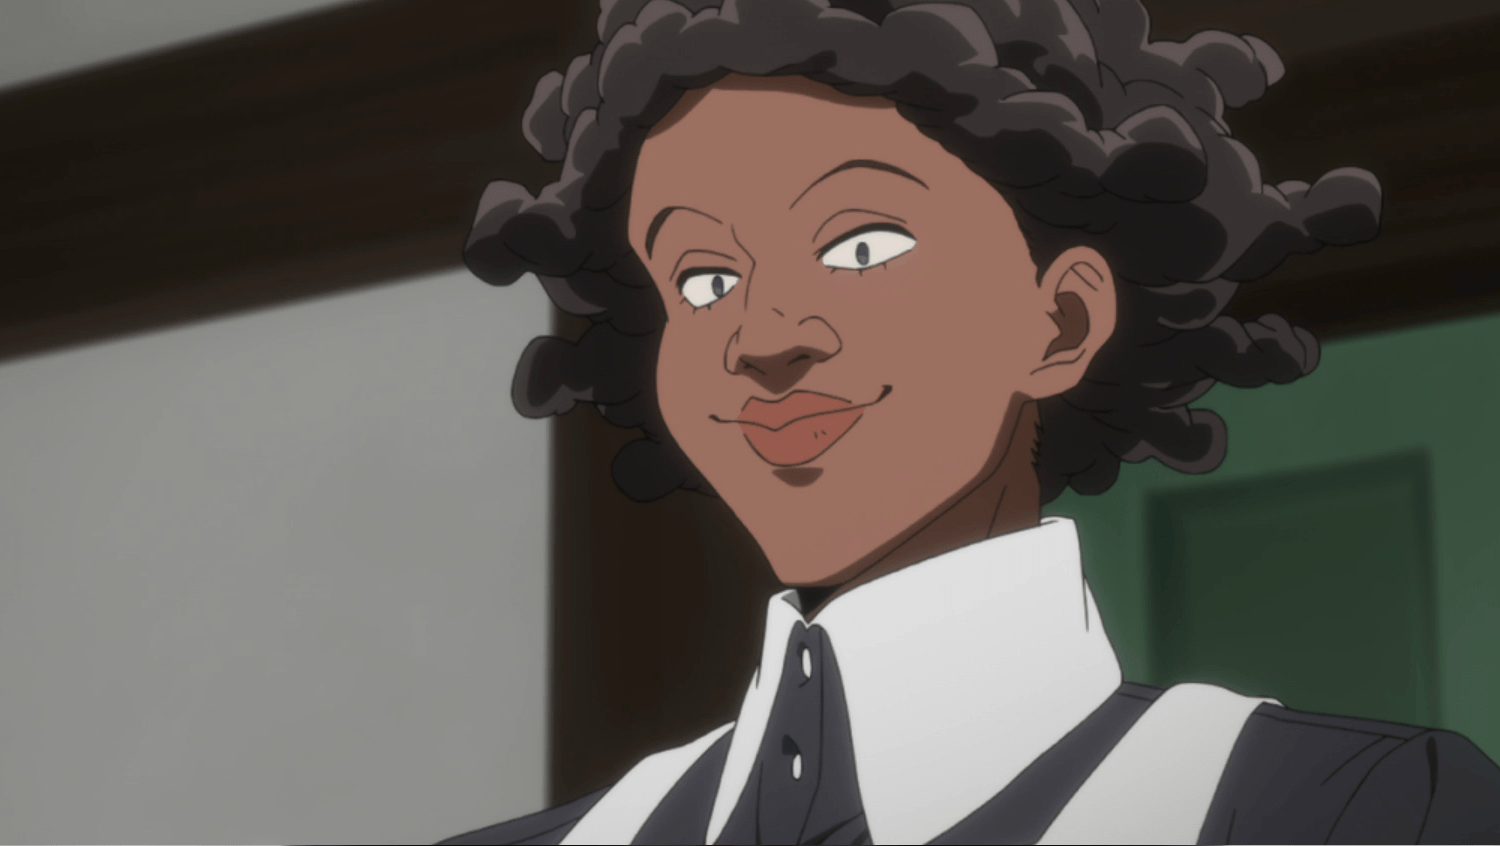 the promised neverland characters Sister Krone